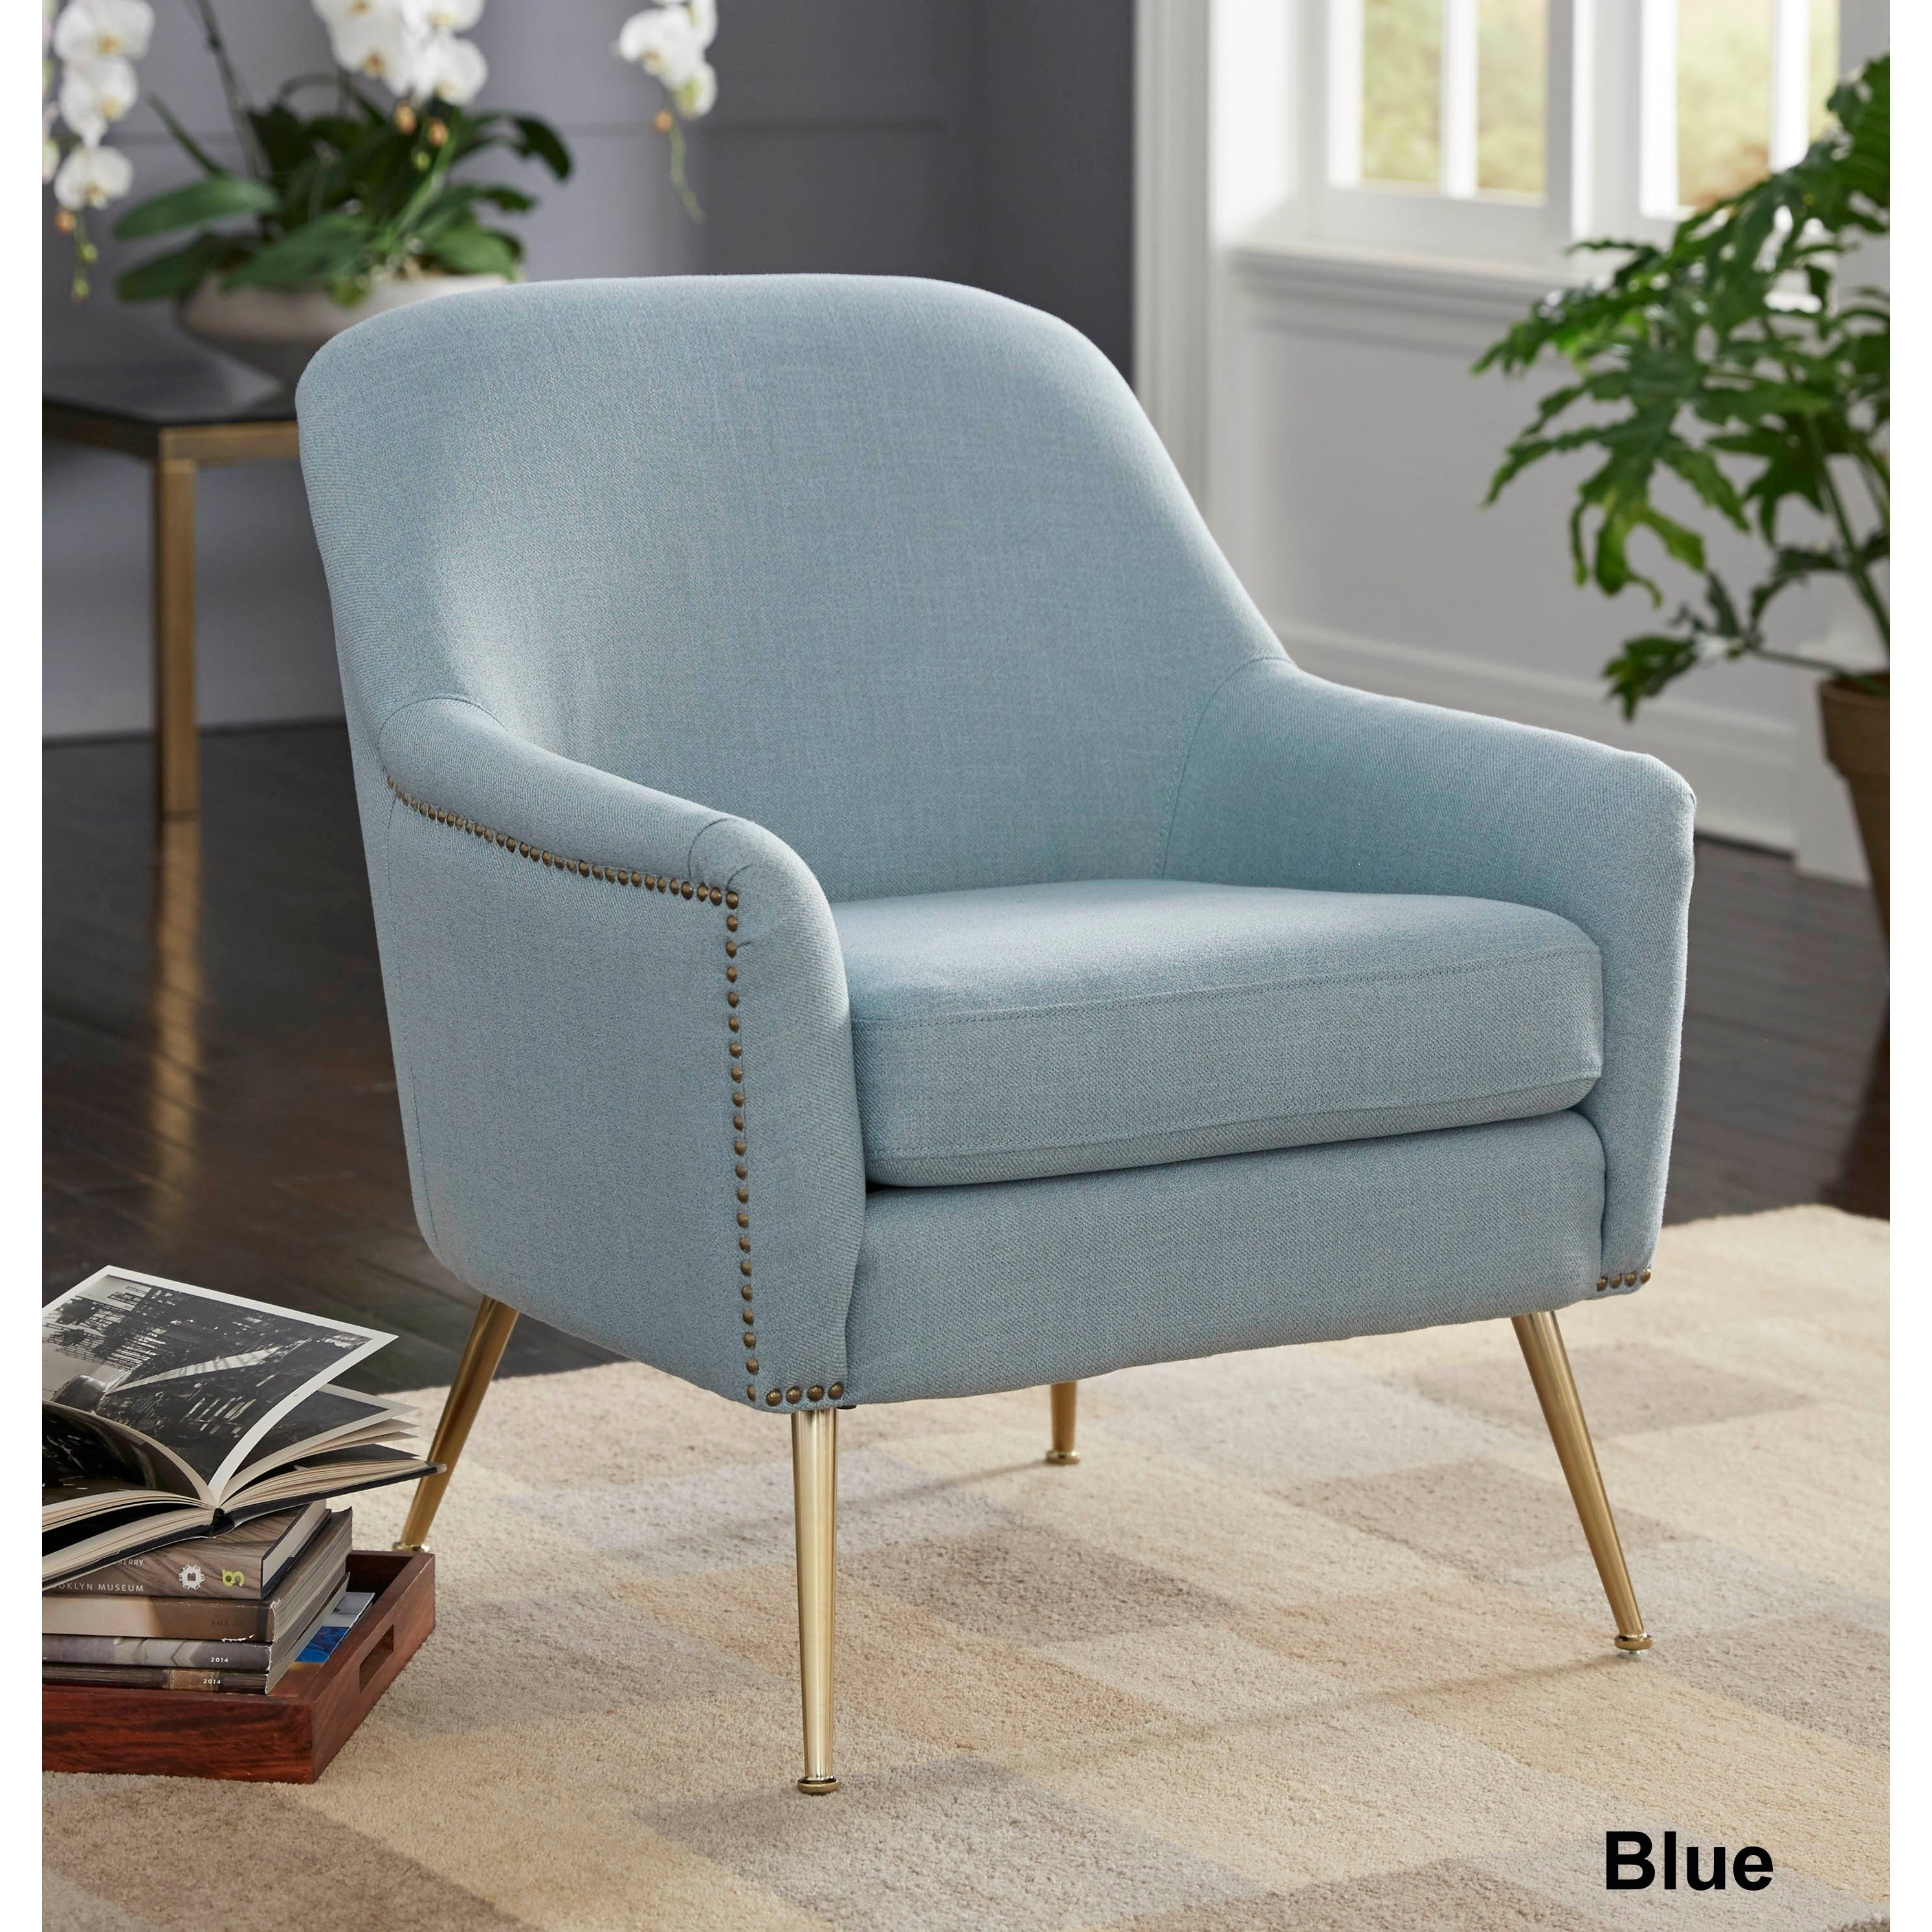 Nautical Blue Side Chairs With Regard To Latest Buy Living Room Chairs Online At Overstock (#11 of 20)